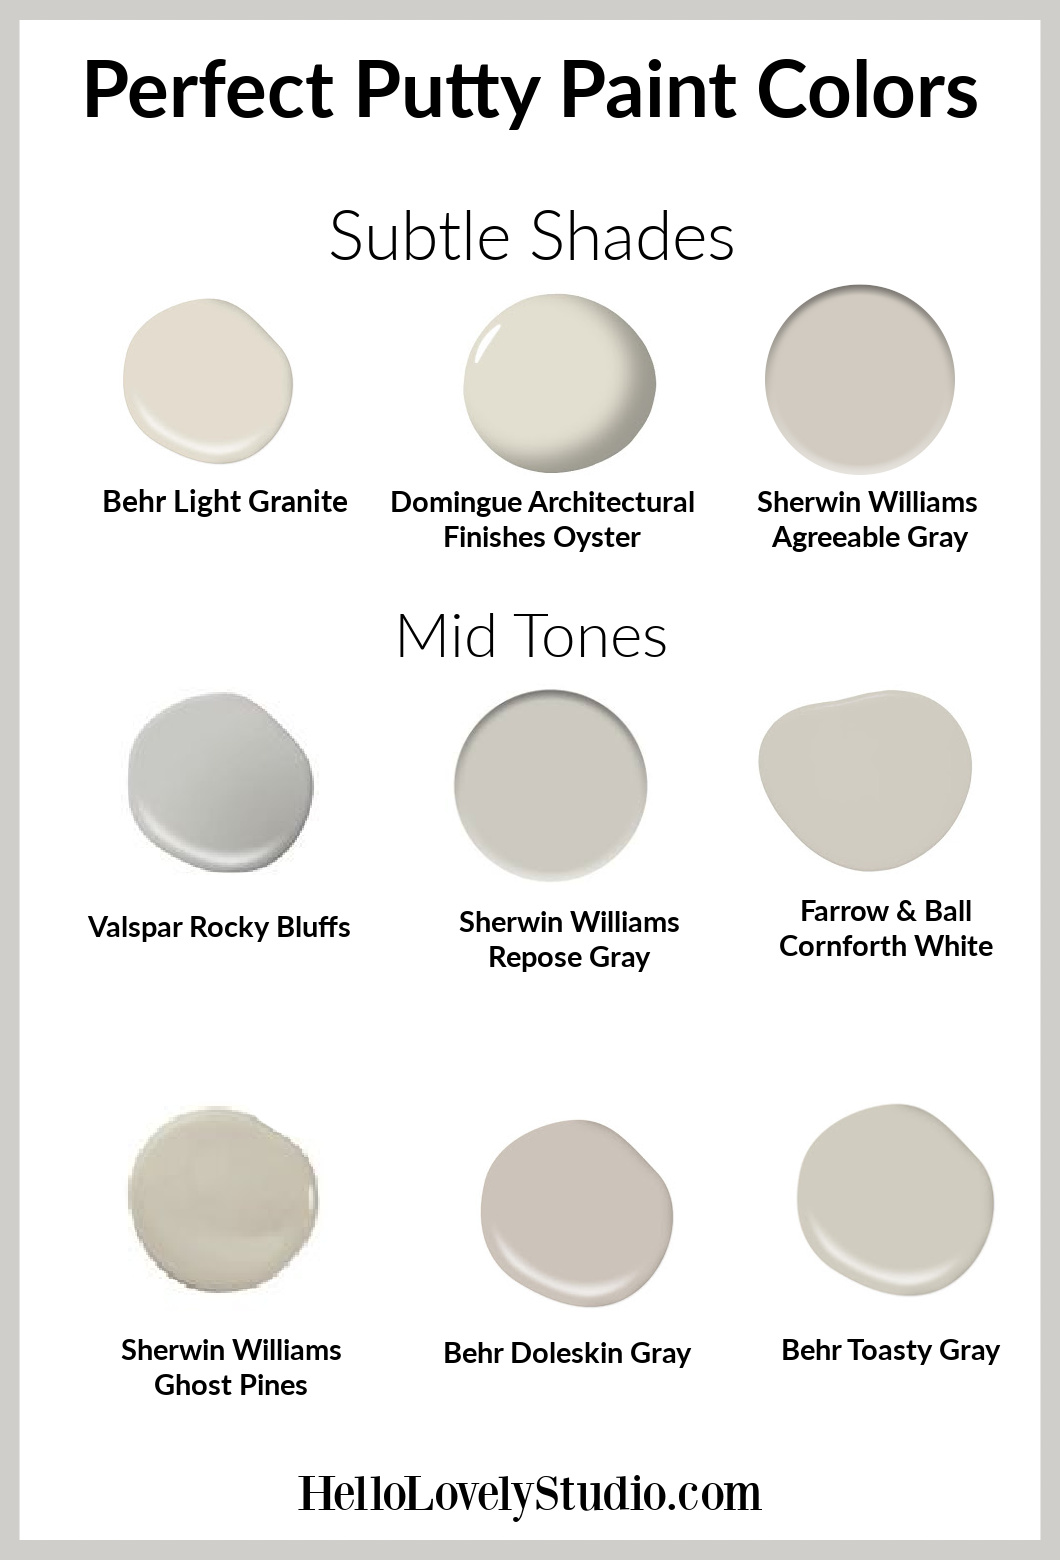 Perfect putty paint colors - Hello Lovely Studio. #paintcolors #puttypaints #mushroom #interiordesign #neutralpaintcolors